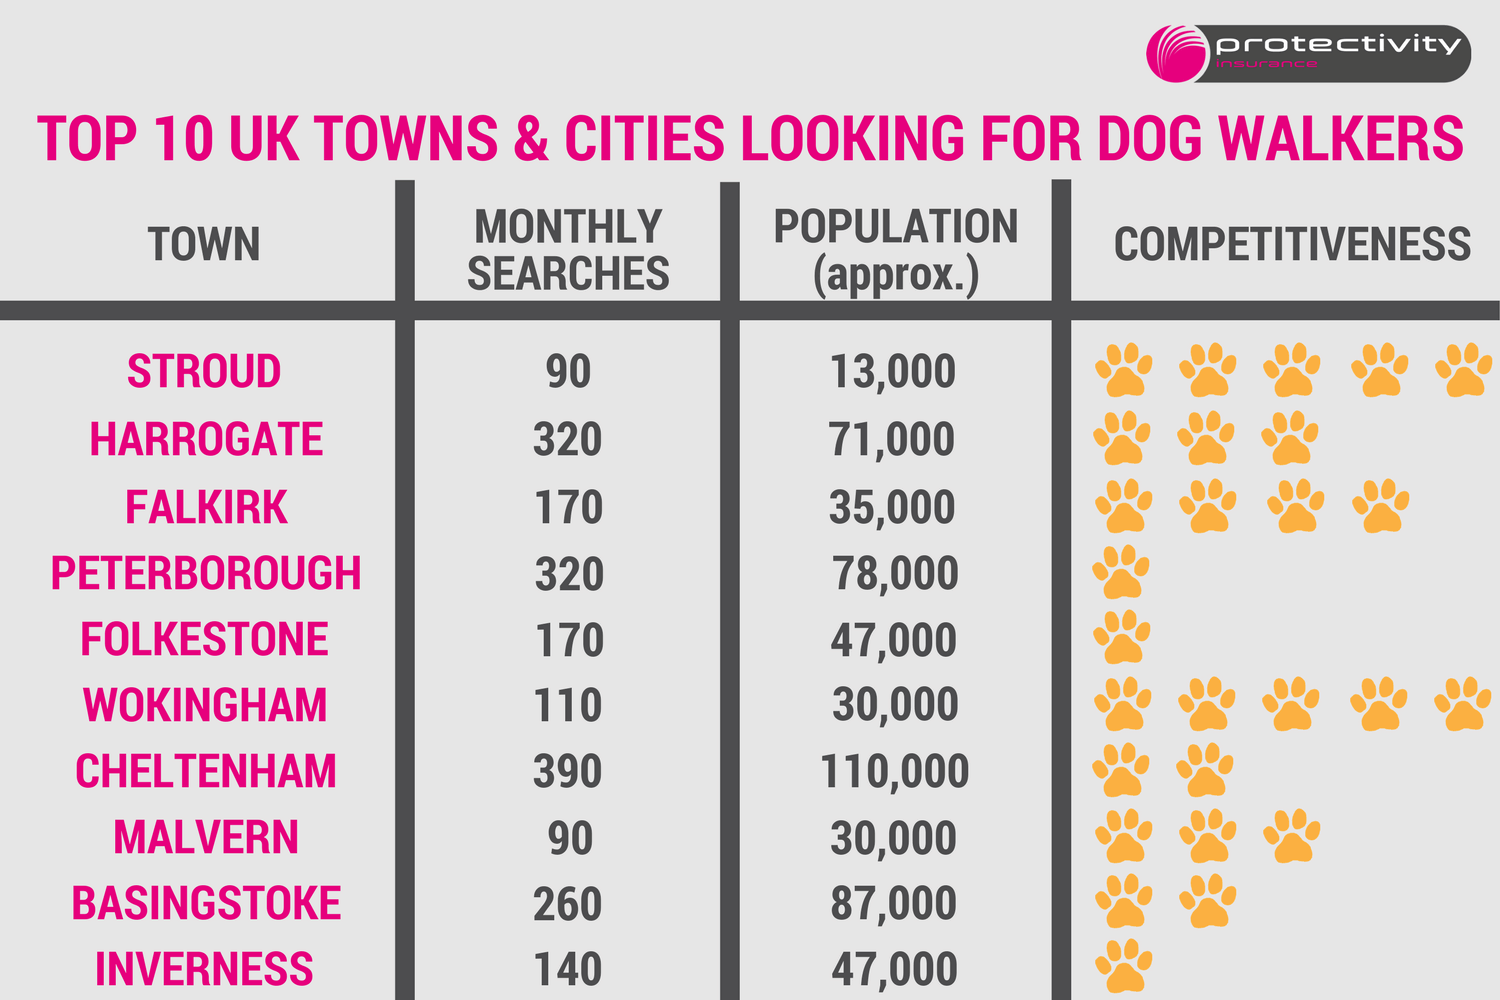 Towns and Cities Most Searching for Dog Walkers